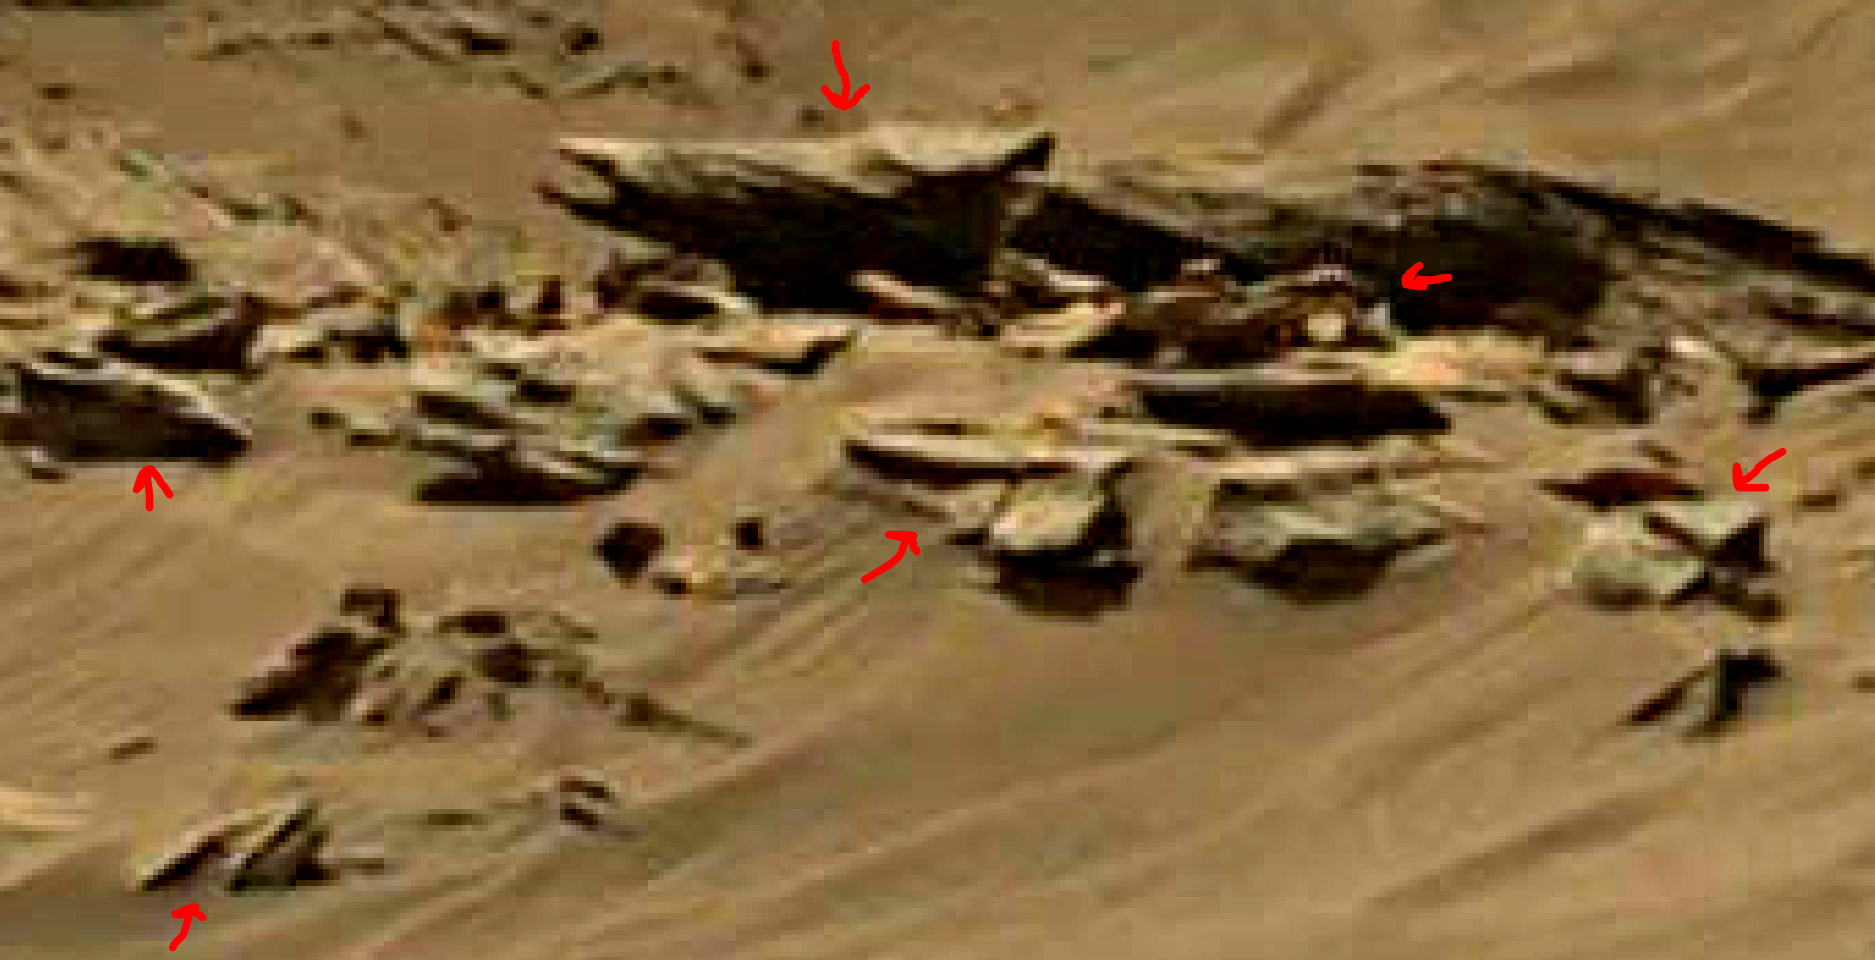 mars sol 1344 anomaly-artifacts 11a was life on mars